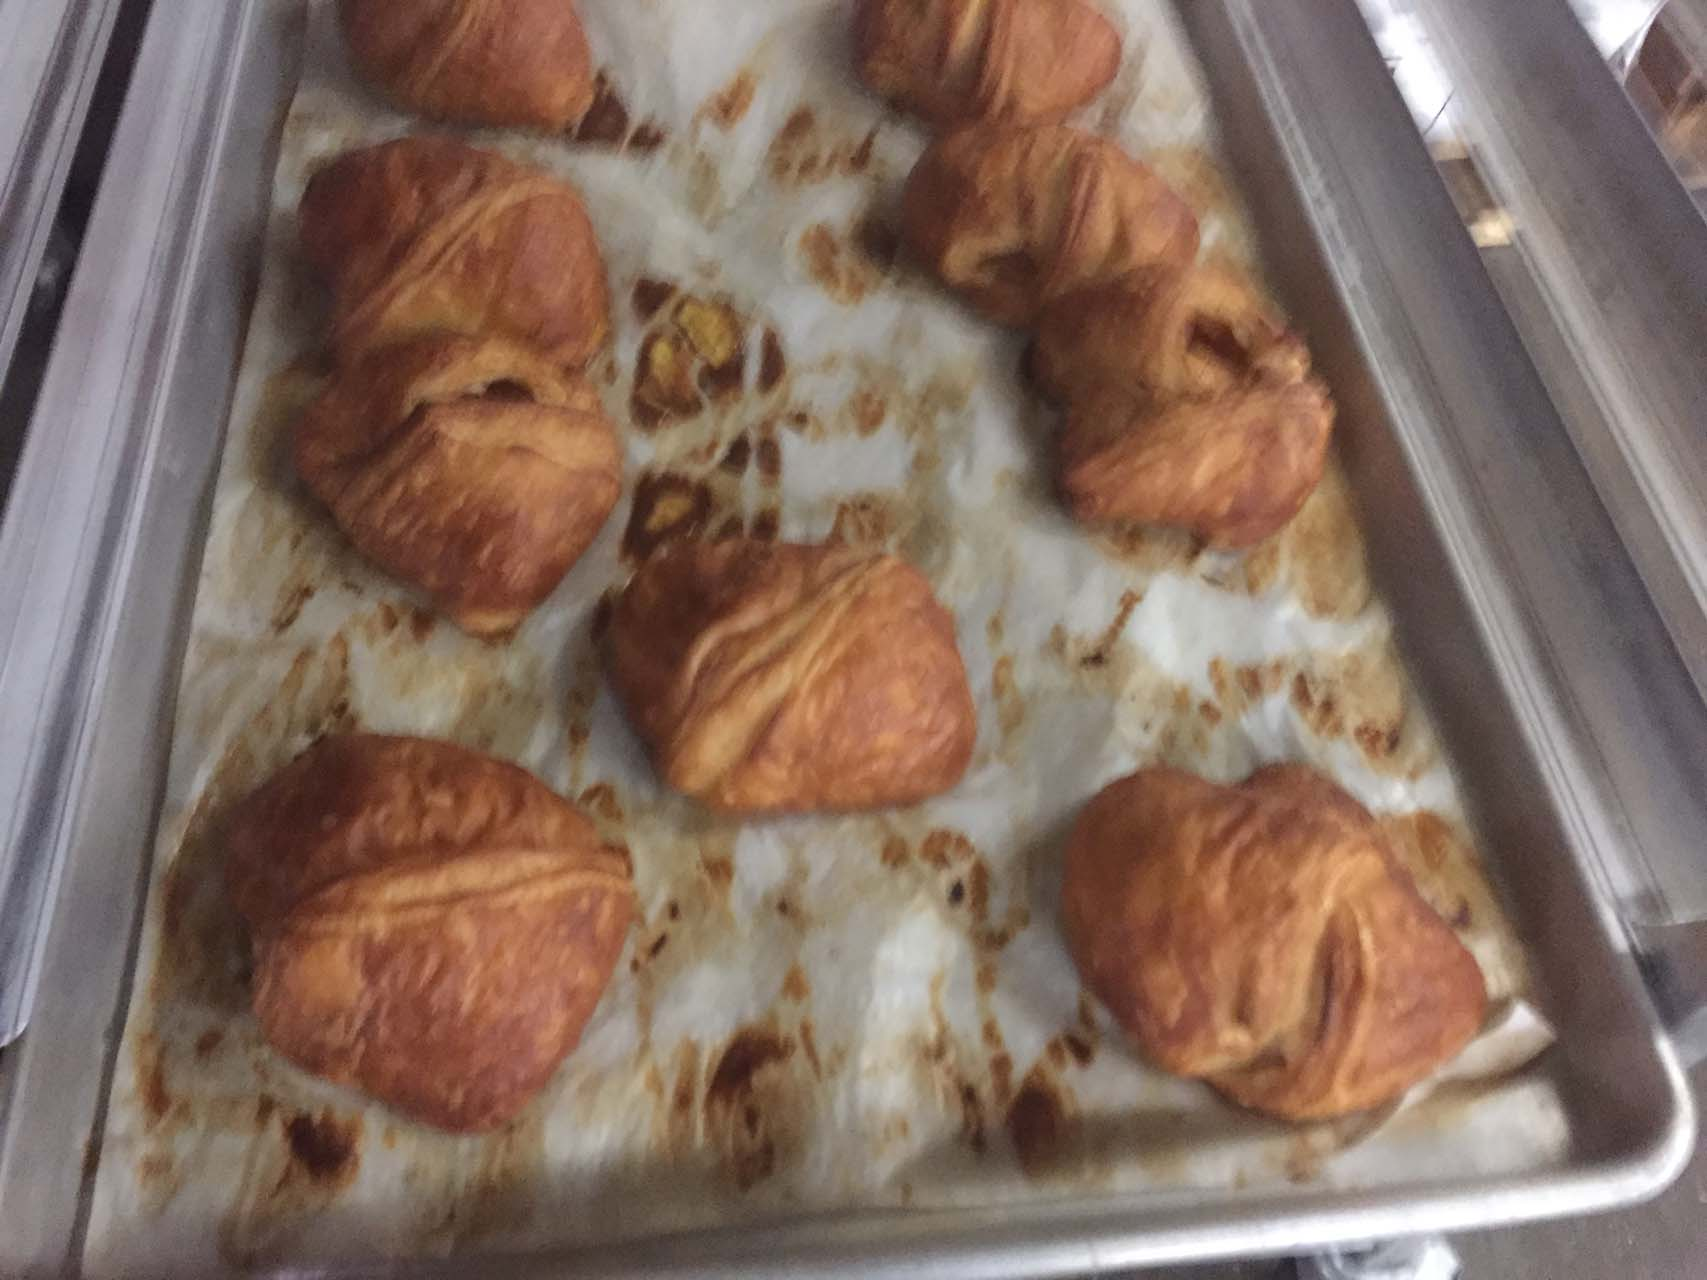 douce bakery breads pastries